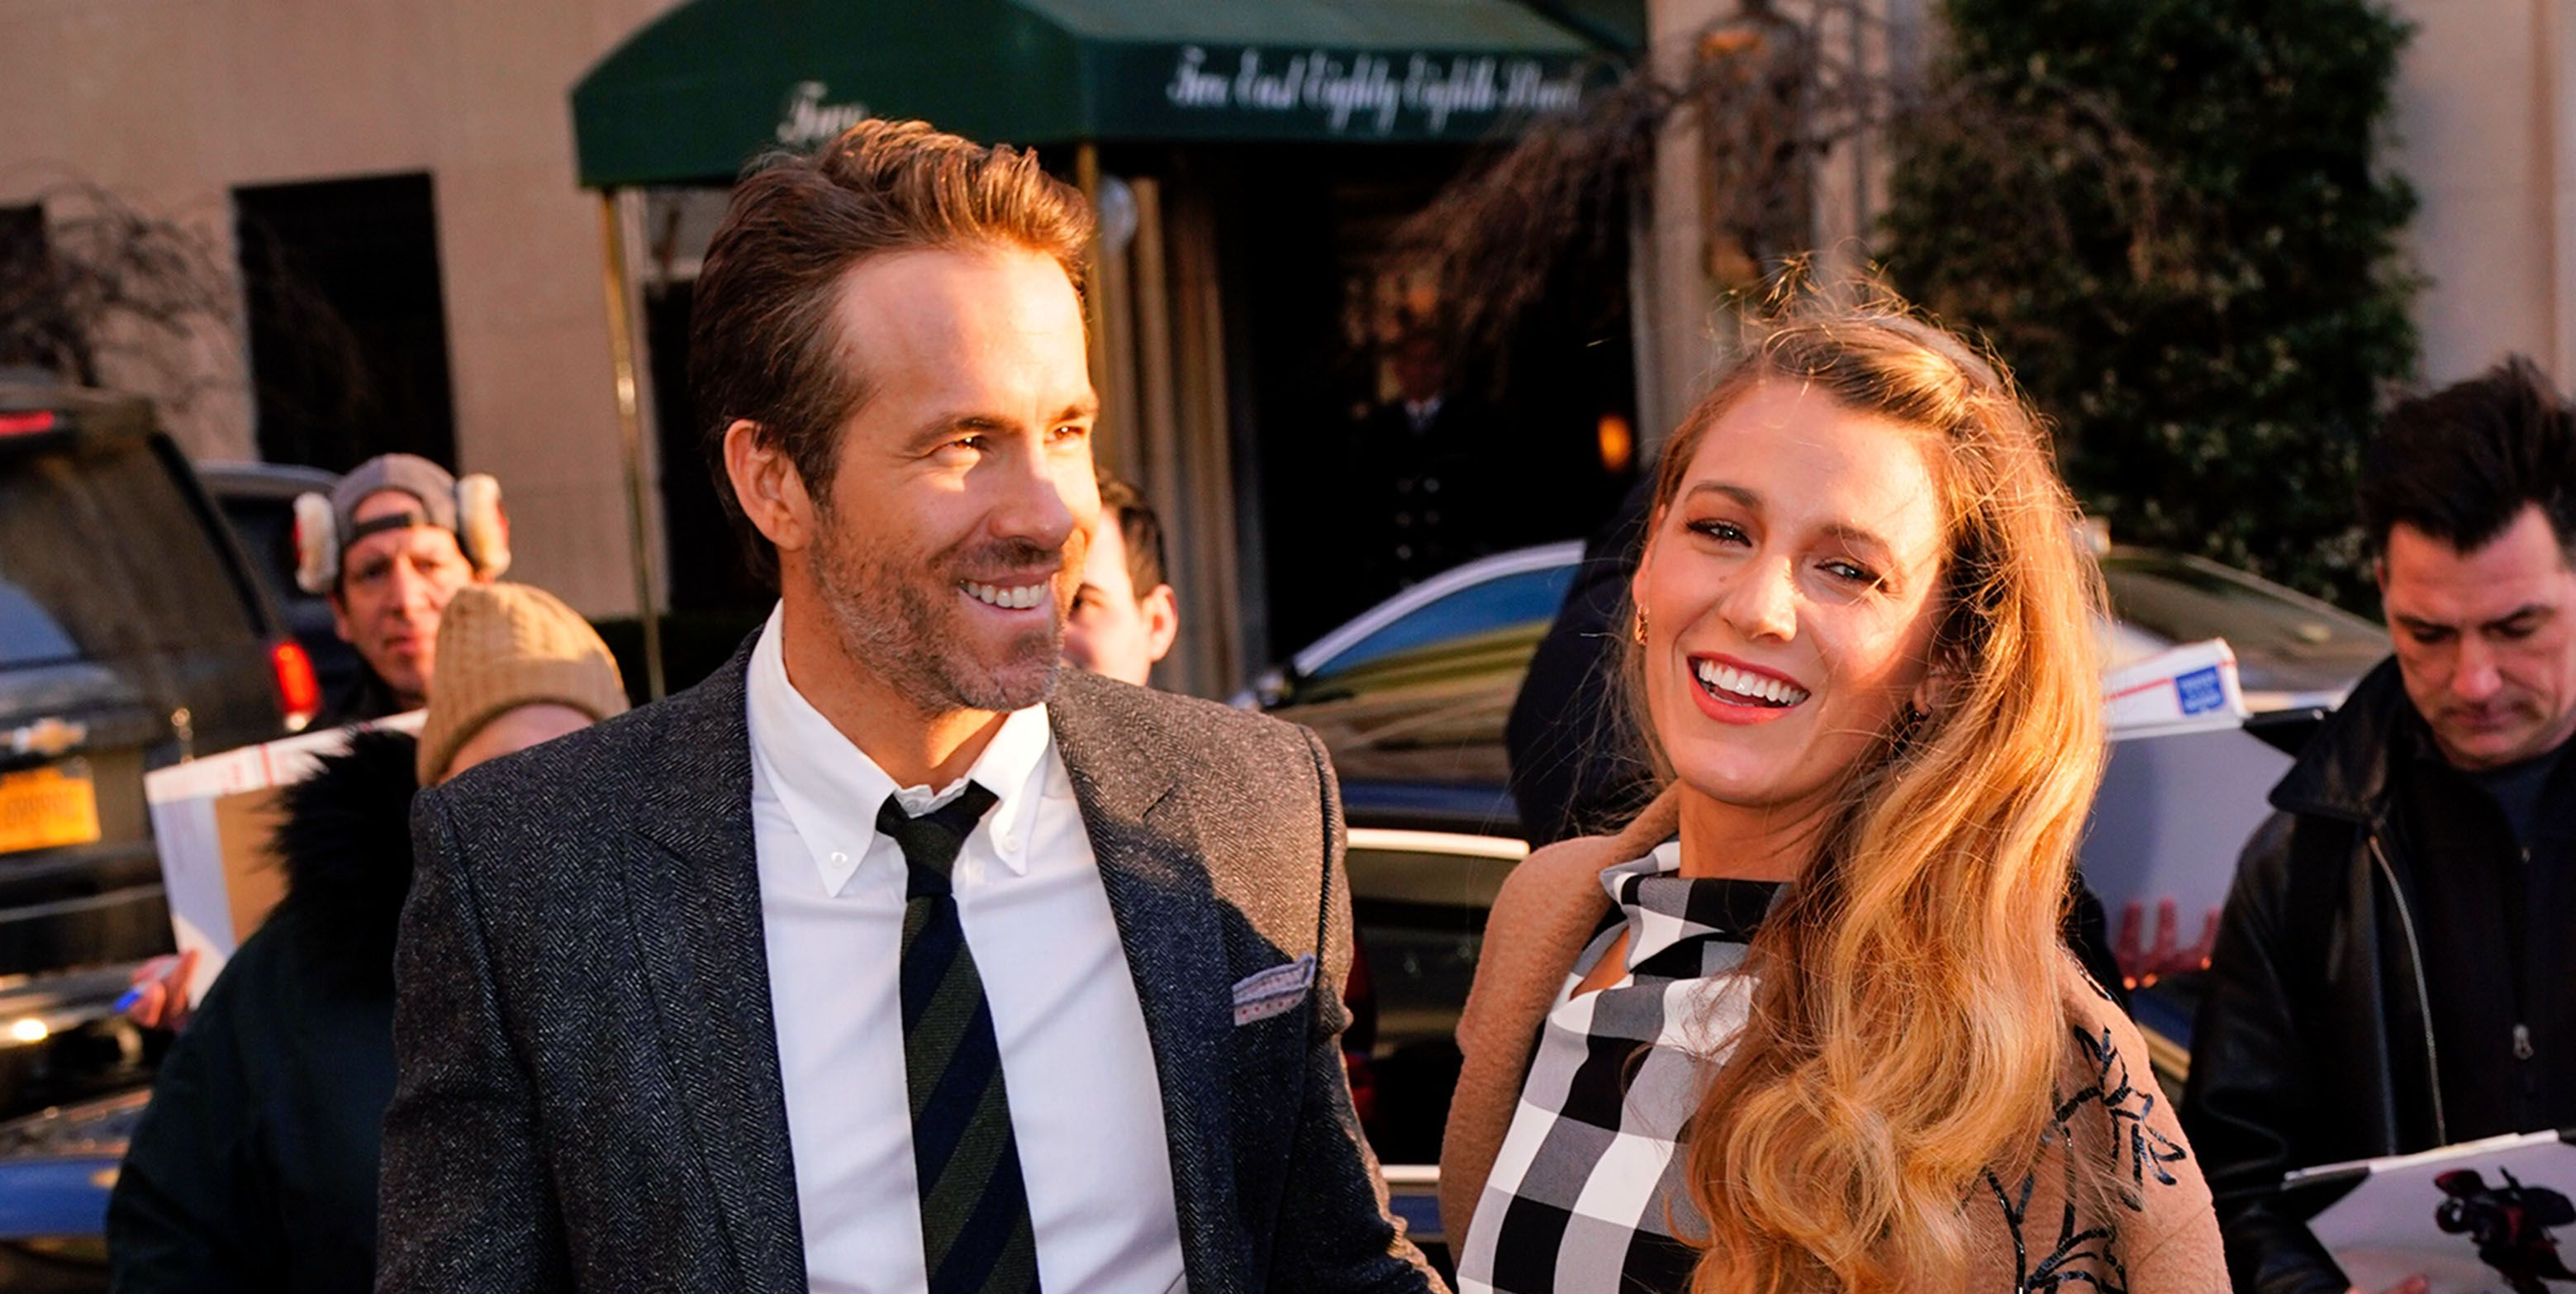 Blake Lively and Ryan Reynolds Donated $400,000 to 4 New York Hospitals